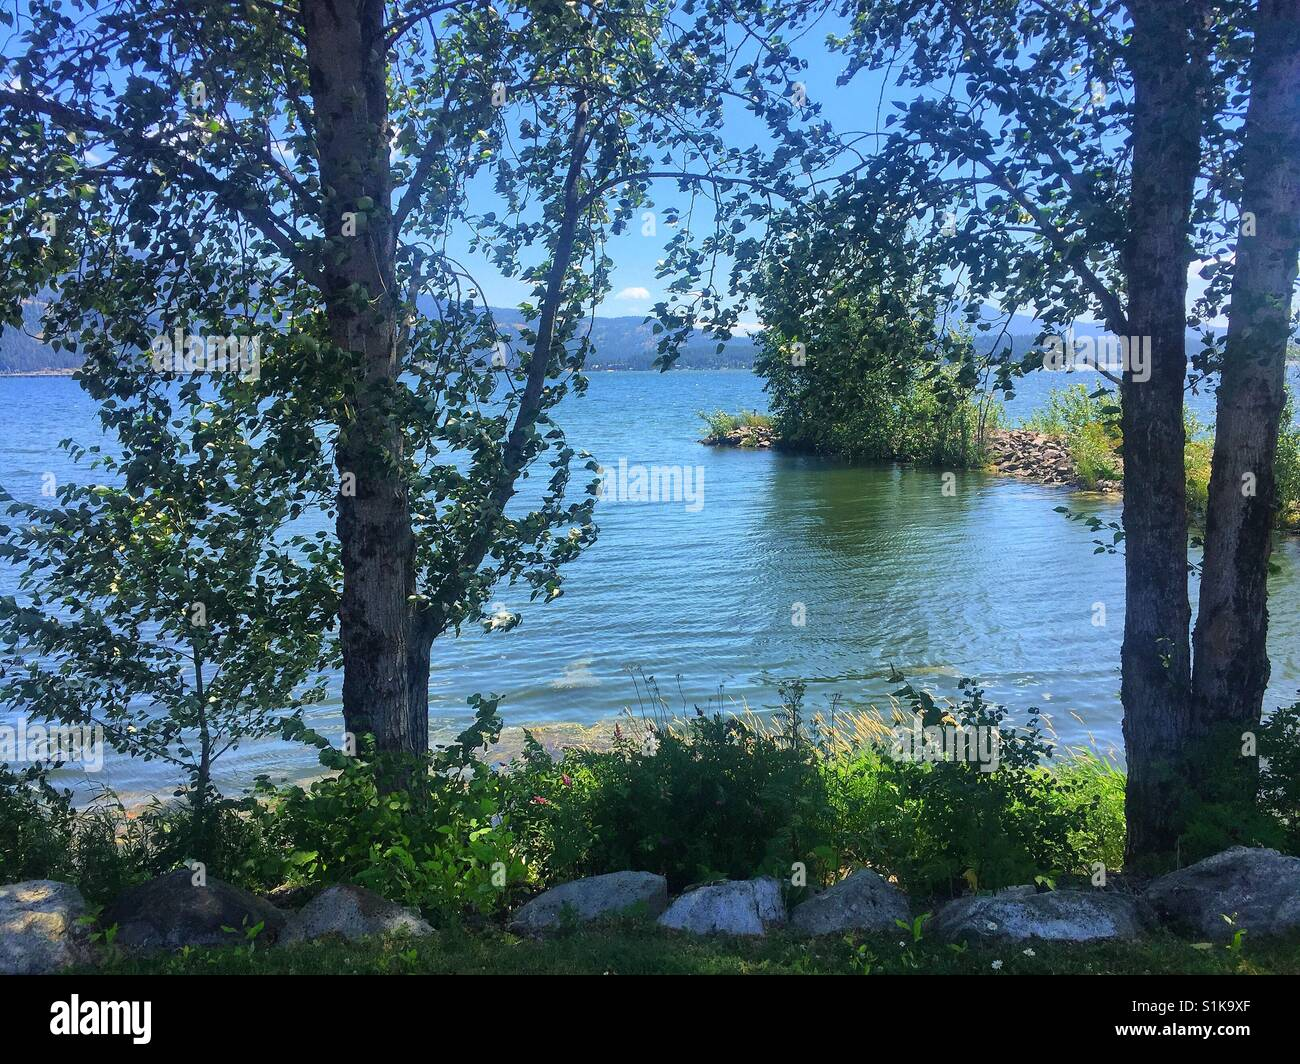 Lake in north Idaho. - Stock Image